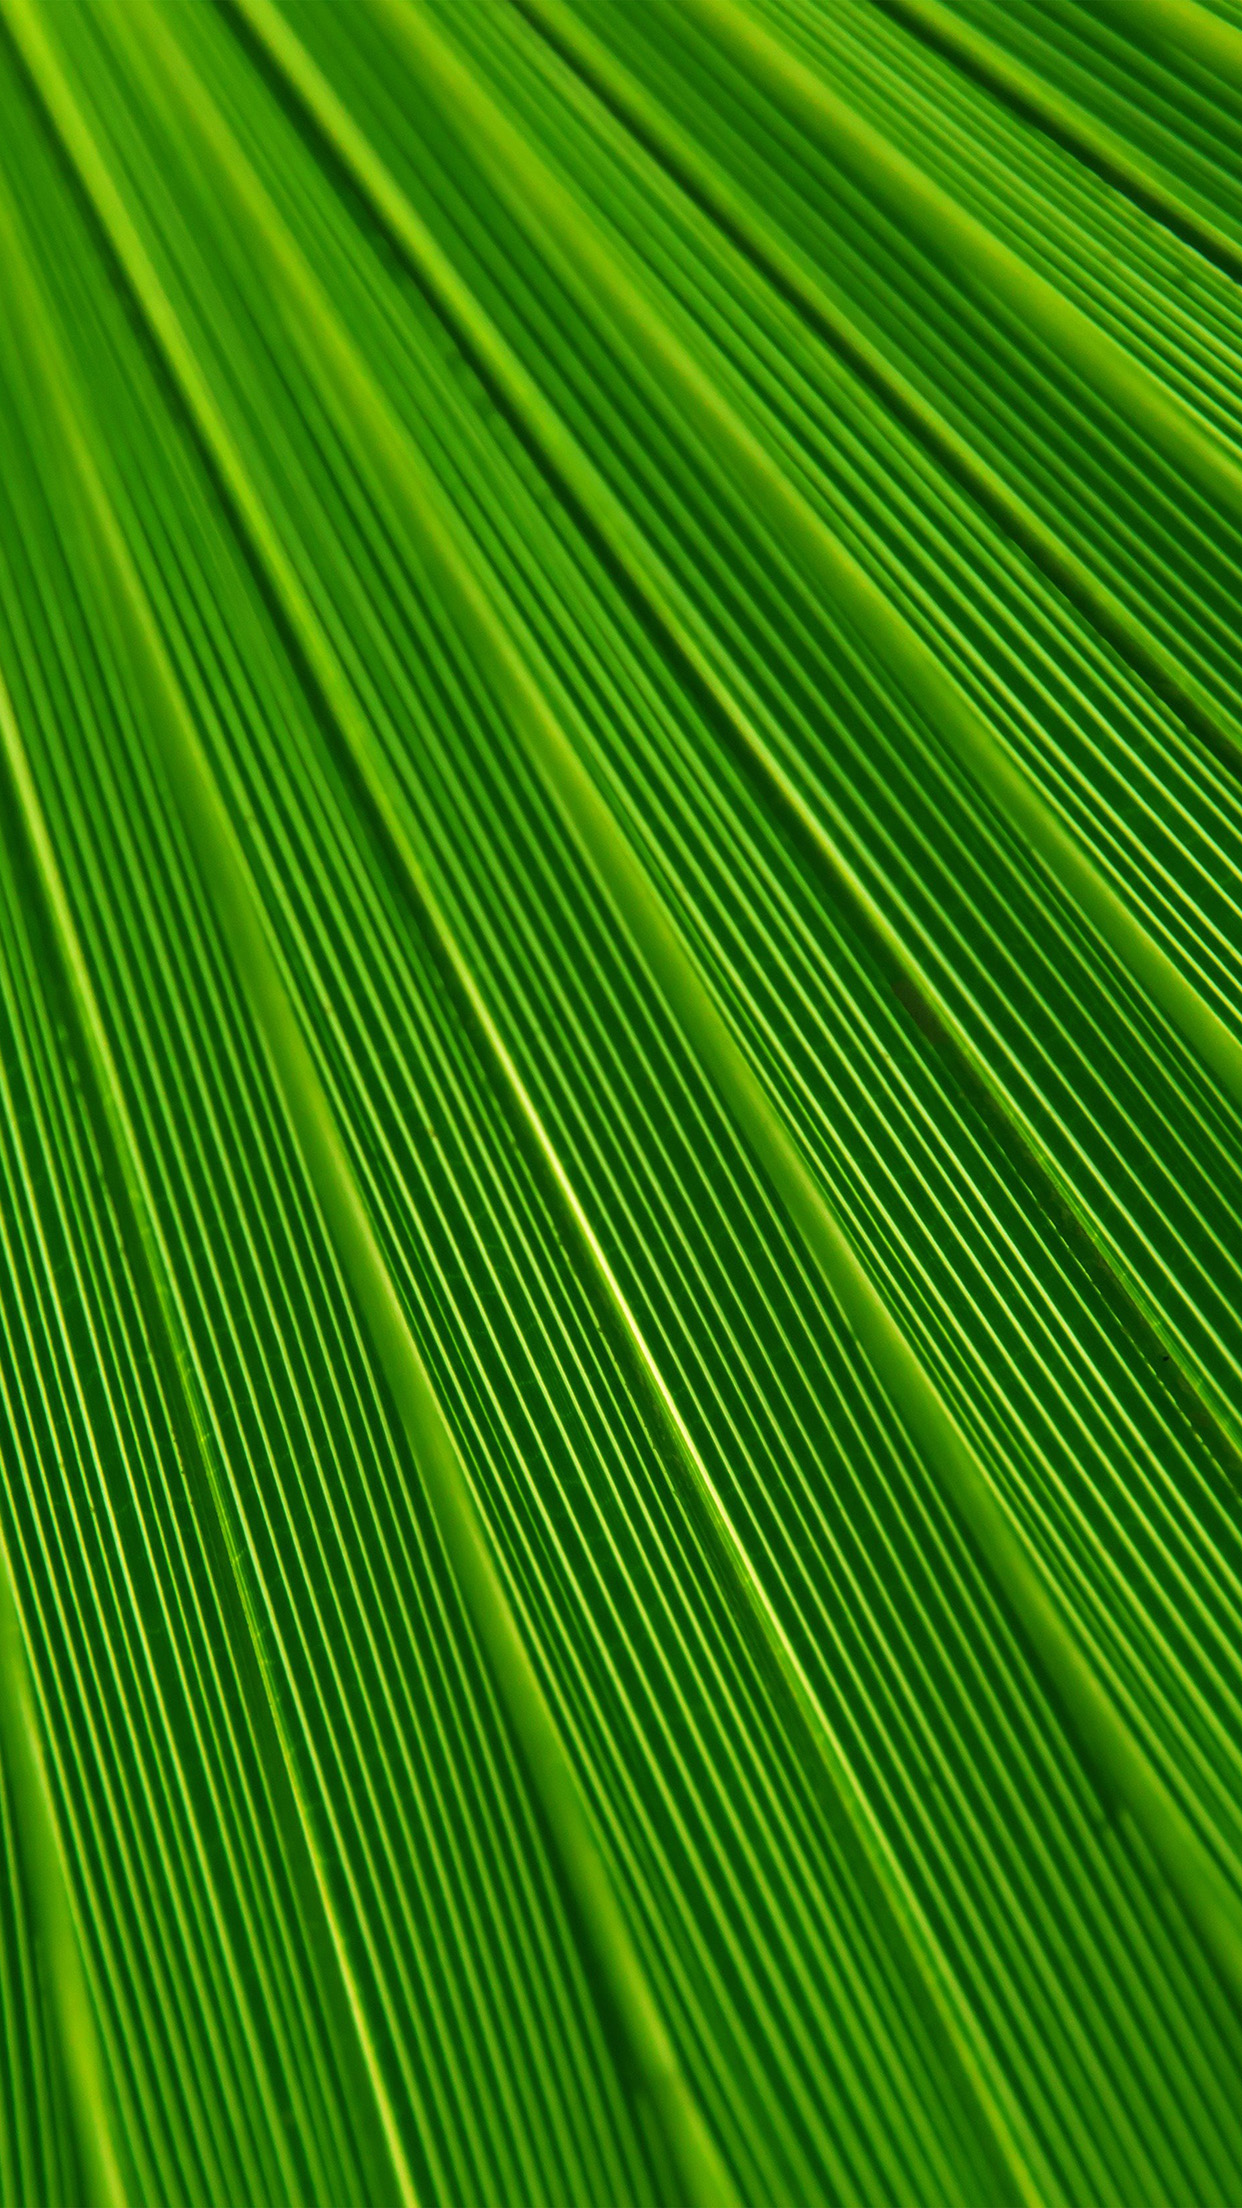 Minimalist Iphone X Wallpaper Vn29 Leaf Green Surface Texture Nature Pattern